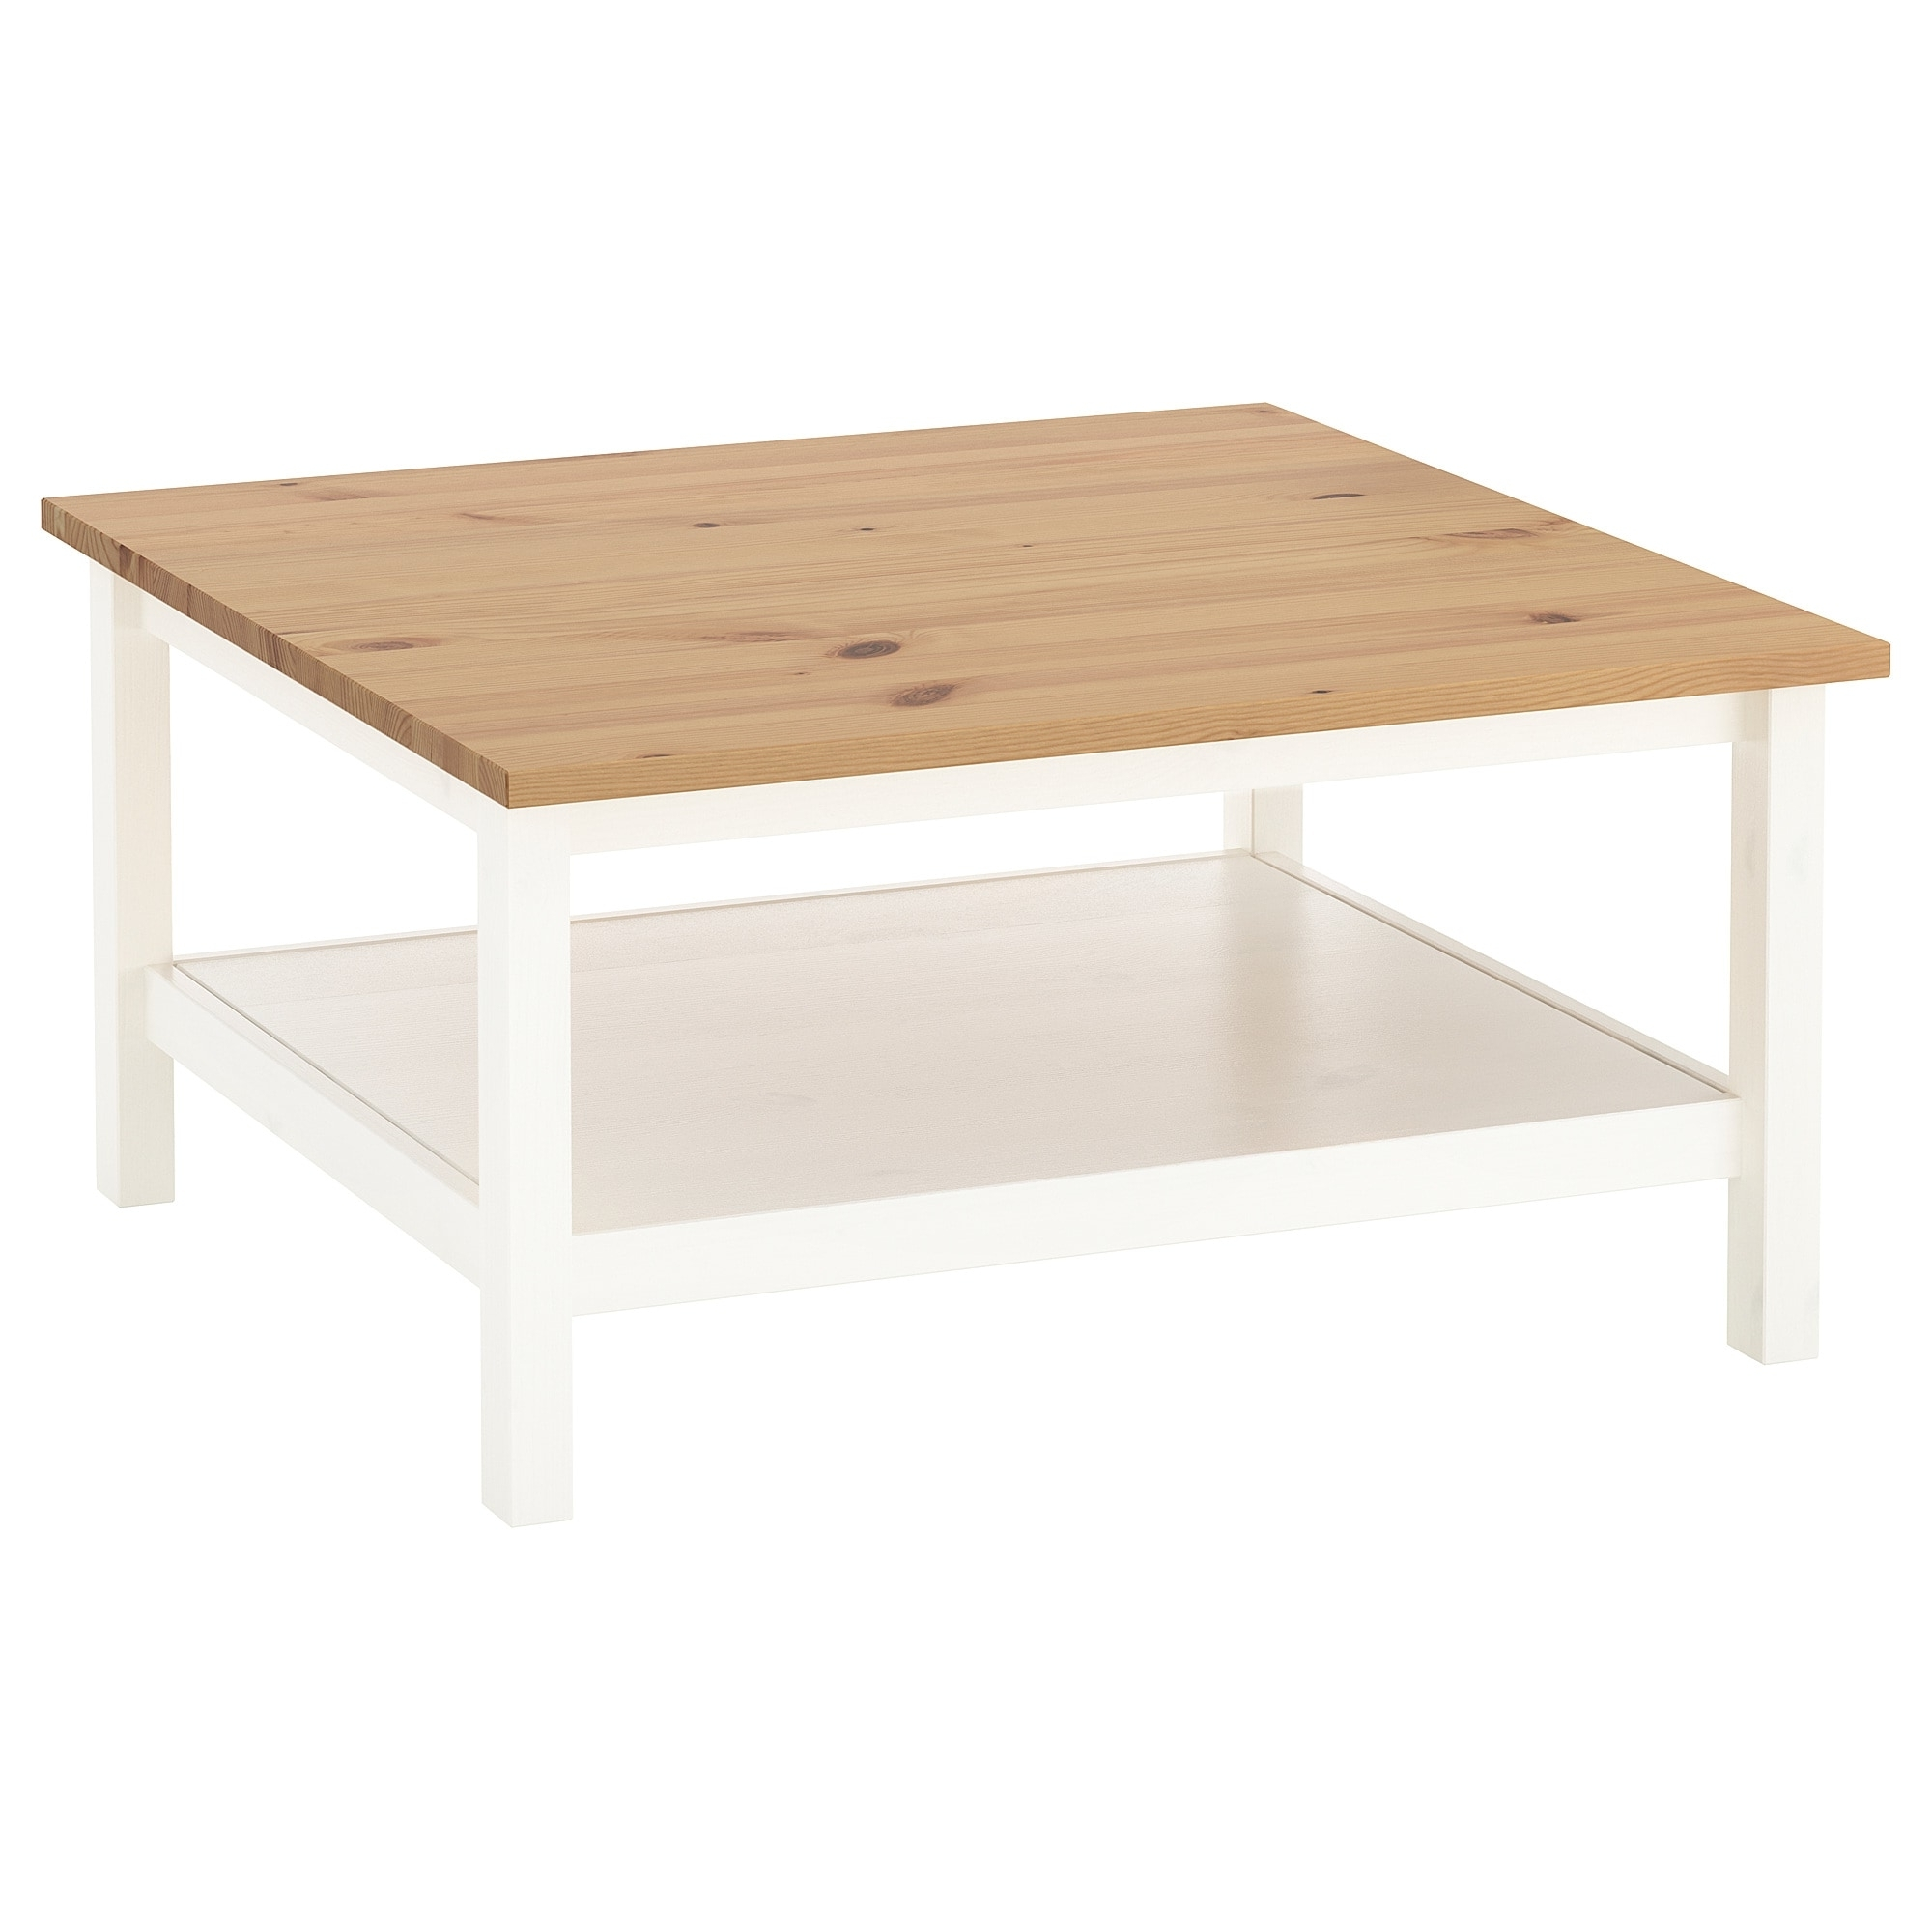 Most Current Light Natural Coffee Tables Pertaining To Hemnes Coffee Table White Stain/light Brown 90 X 90 Cm – Ikea (View 13 of 20)